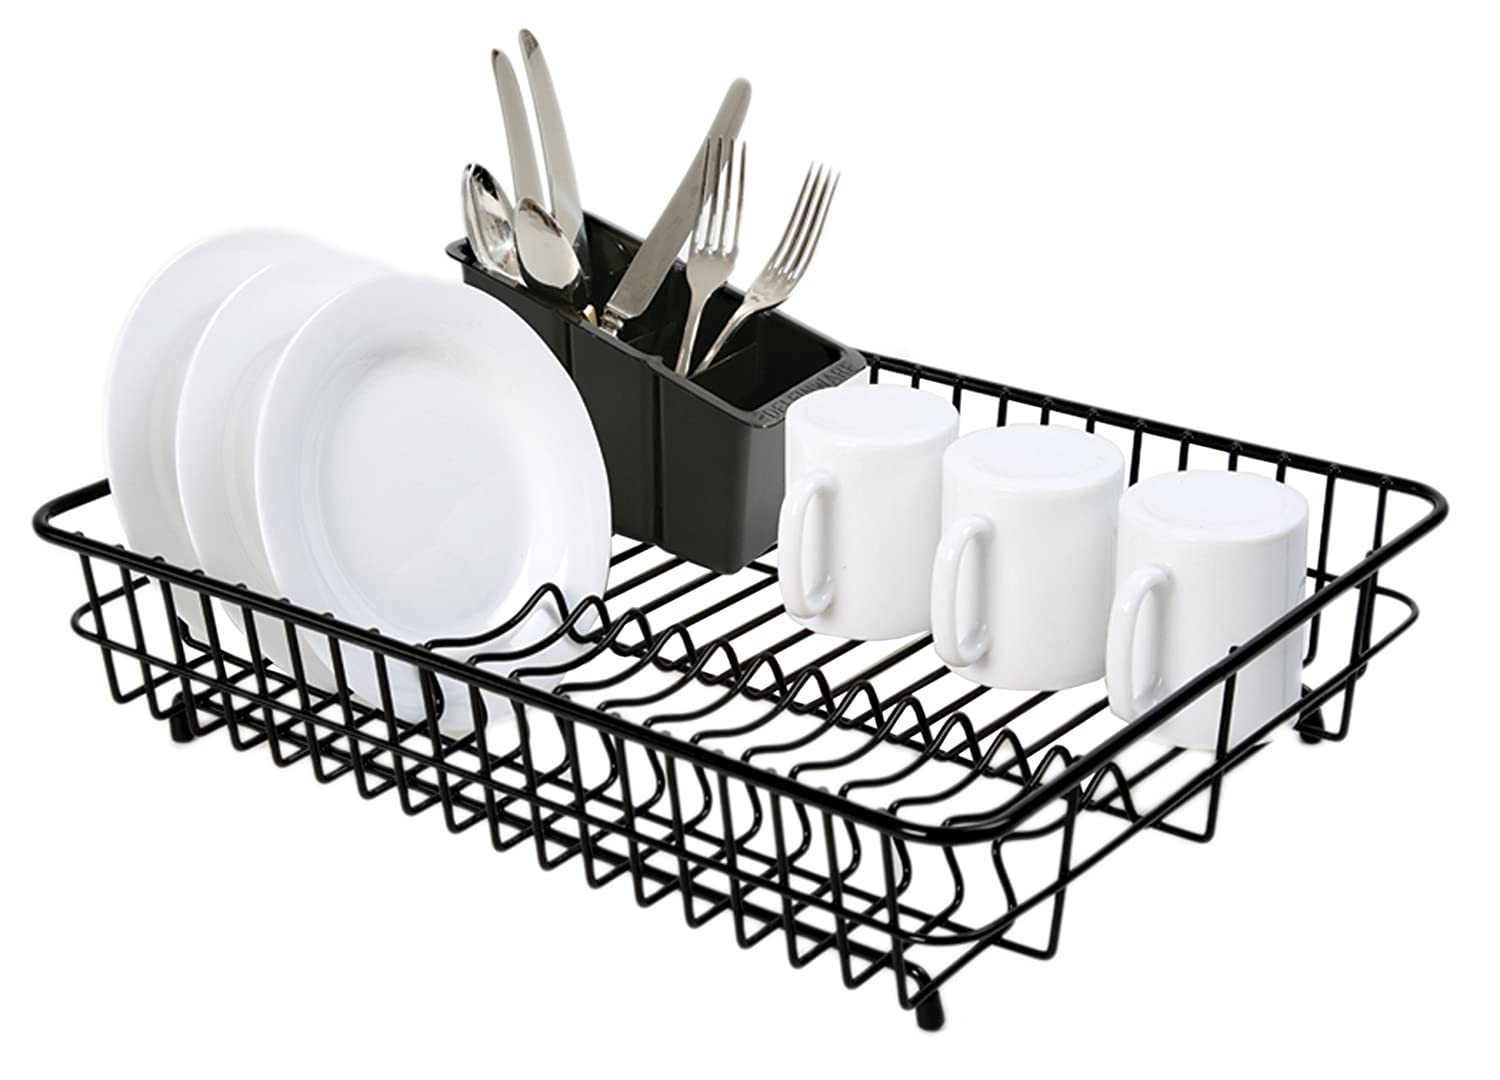 Dish Rack With Drainer Ktaxon Kitchen Dish Cup Drying Rack Holder Sink Drainer Tier Dryer With